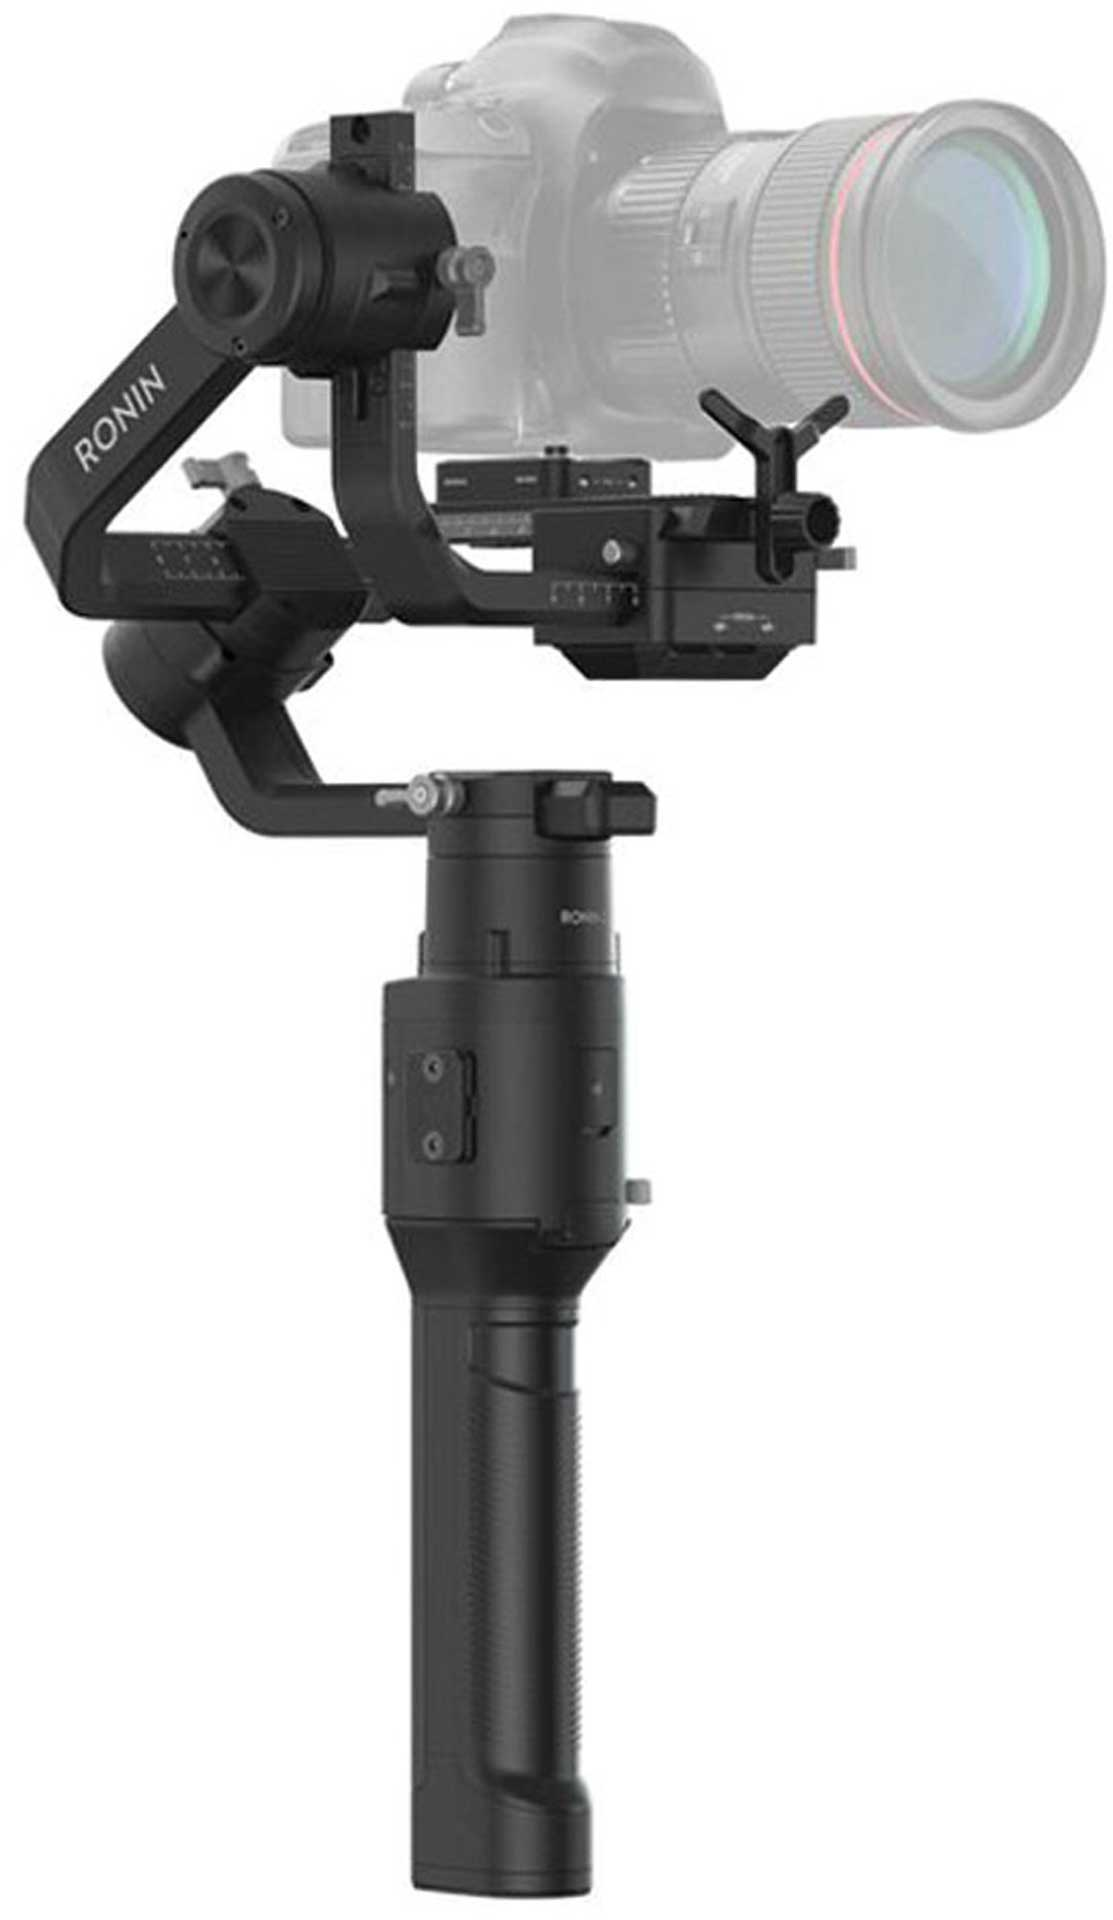 DJI RONIN-S ESSENTIALS KIT - HANDHELD GIMBAL